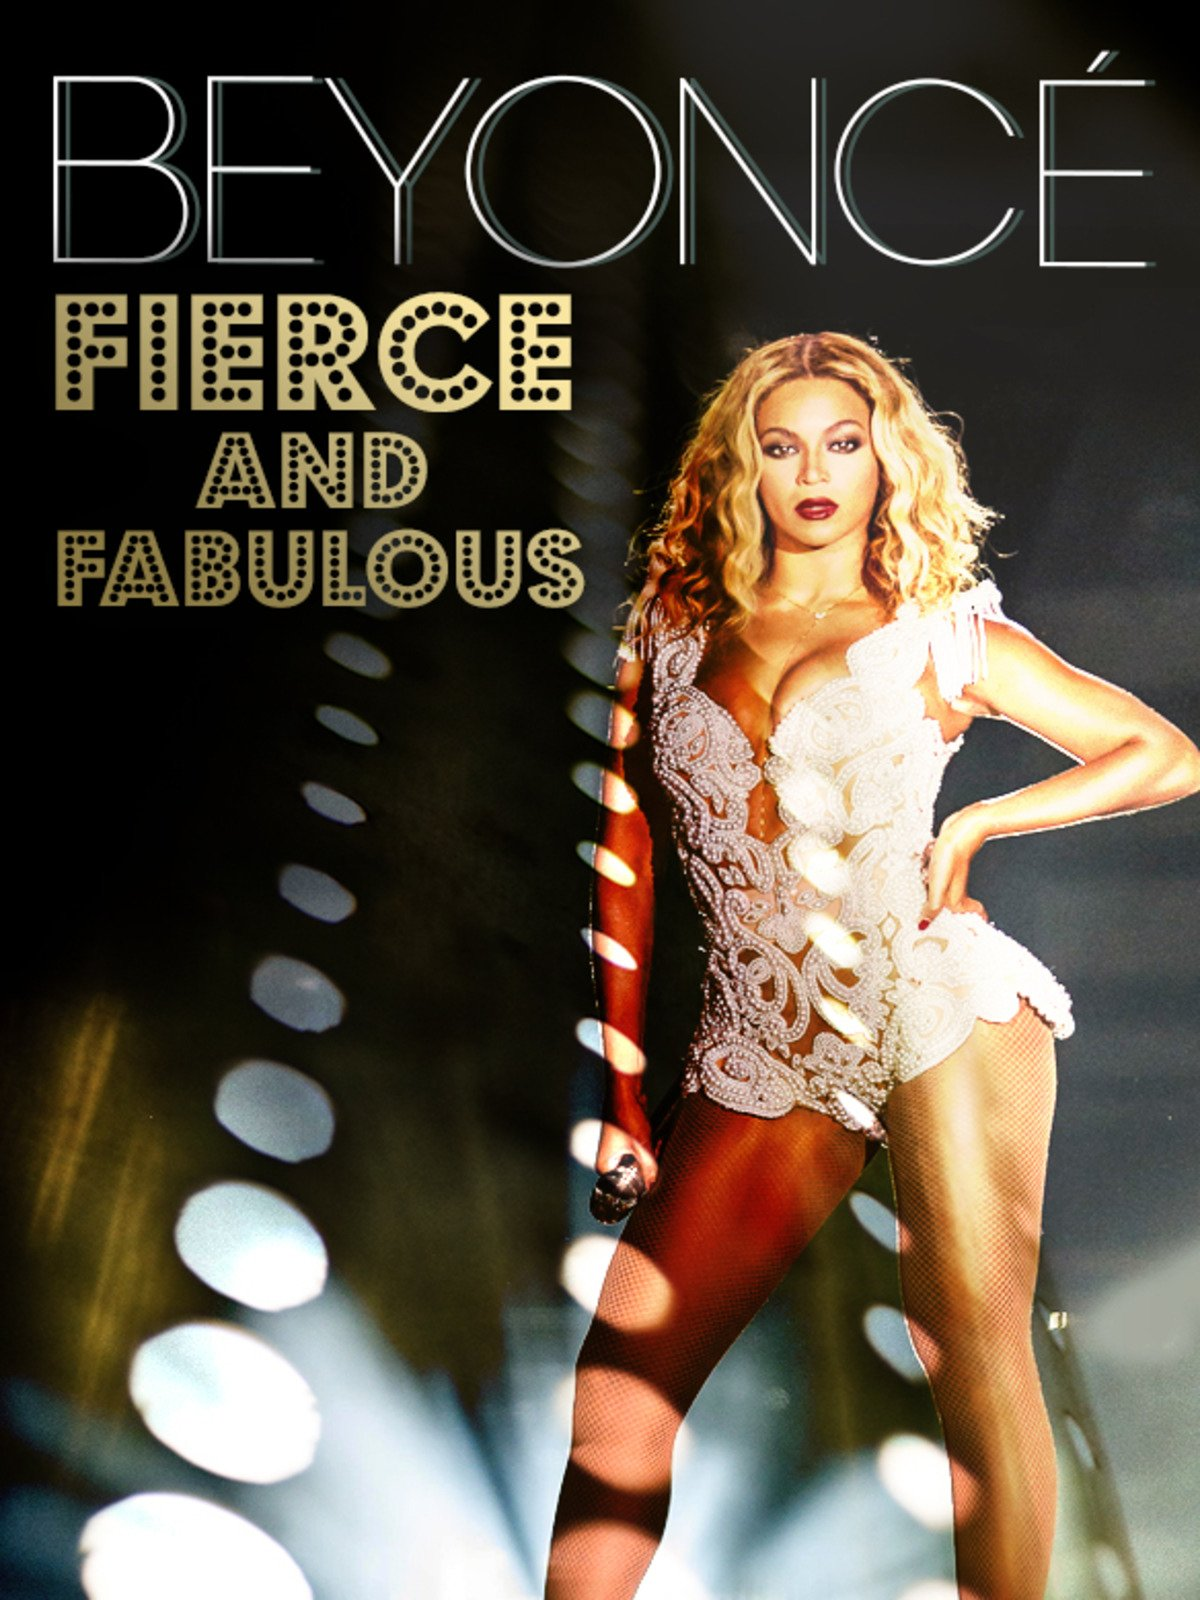 Beyoncé: Fierce and Fabulous